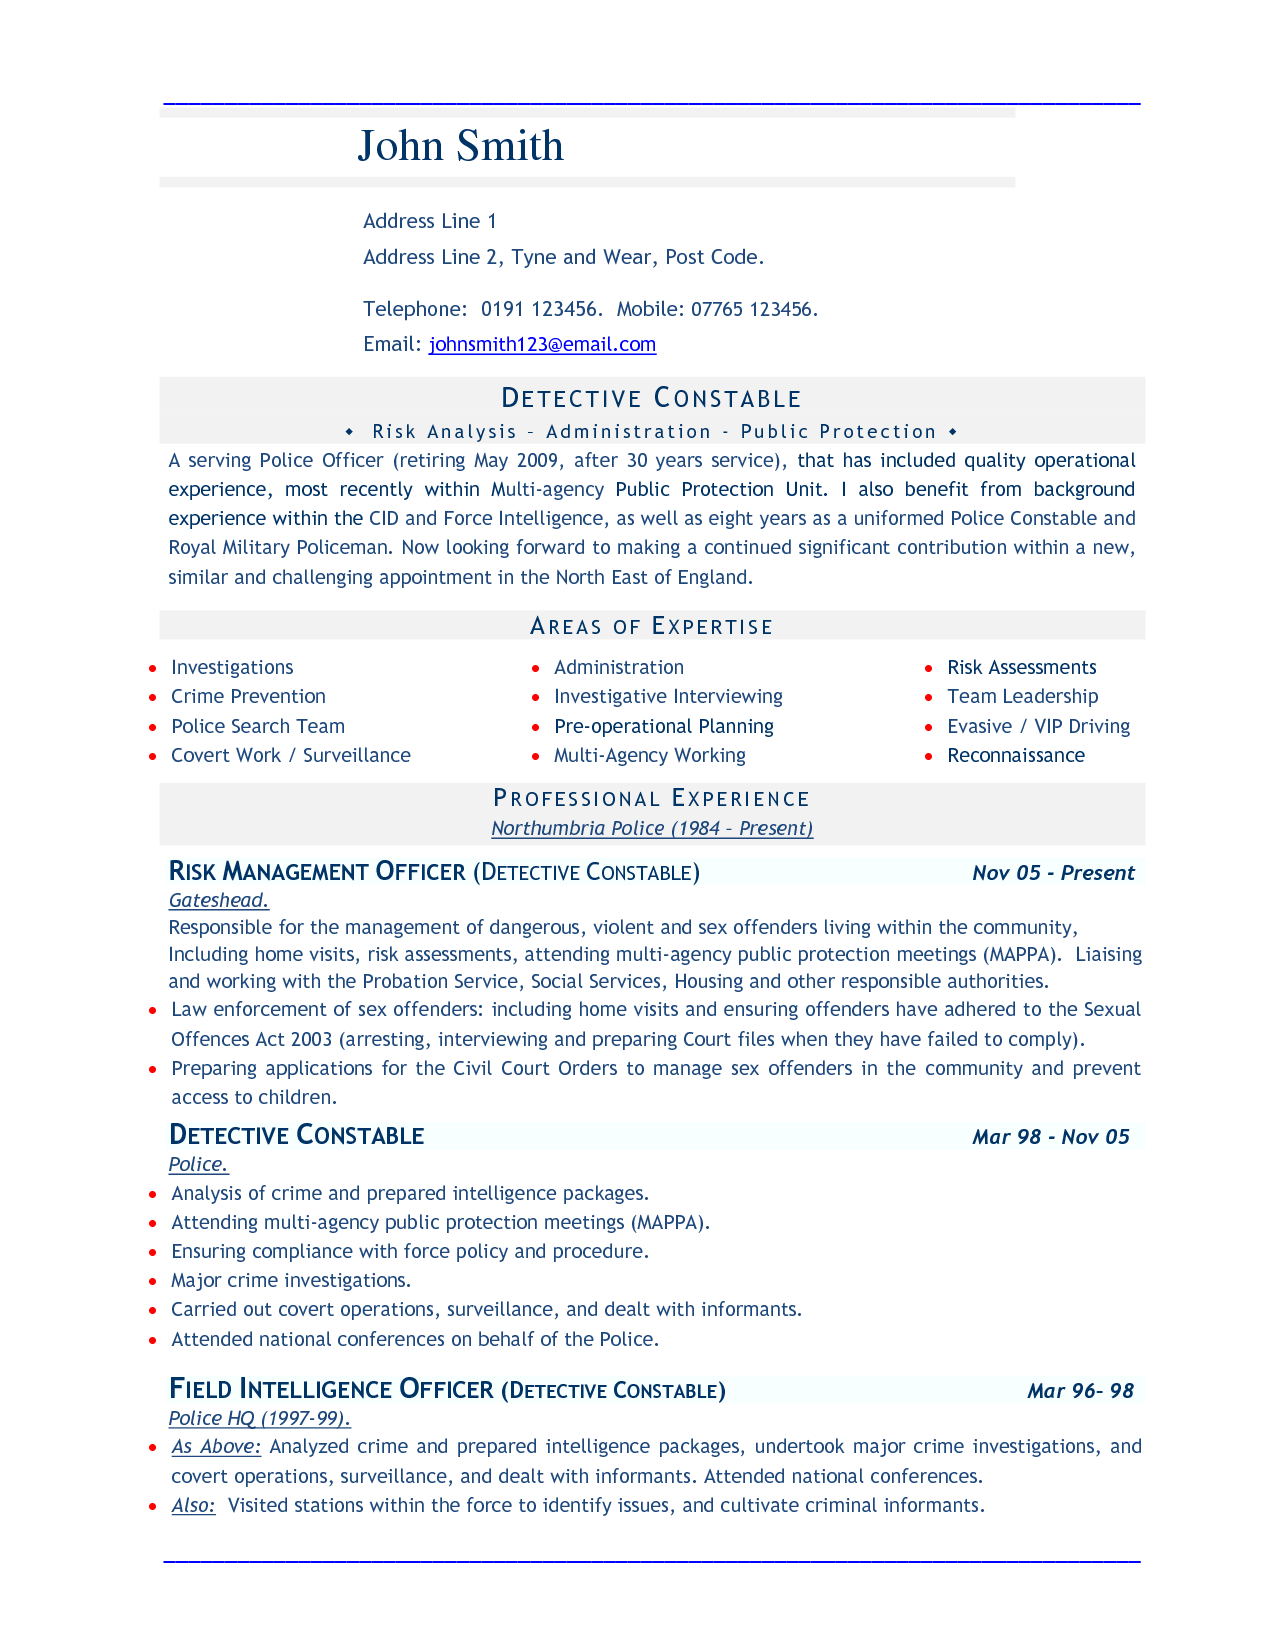 Cover Letter Template Word Free Download - Resume Templates Microsoft Word Resume Templates Microsoft Word